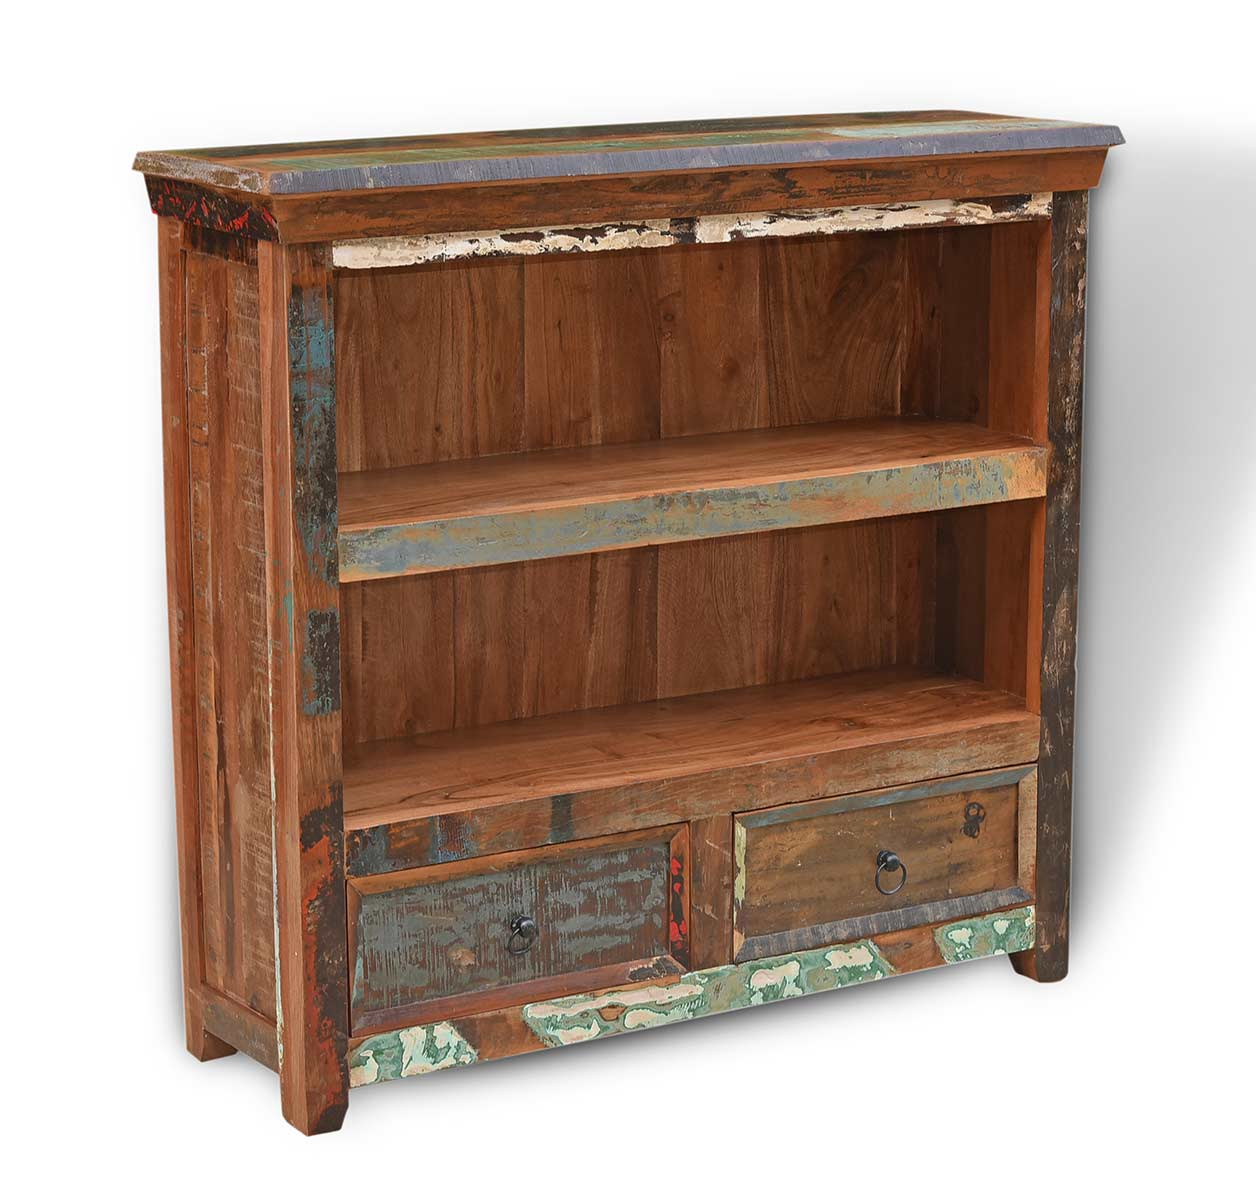 Details About Recycled Reclaimed Indian Wood Small Bookcase Bookshelves Solid Wood Furnitu